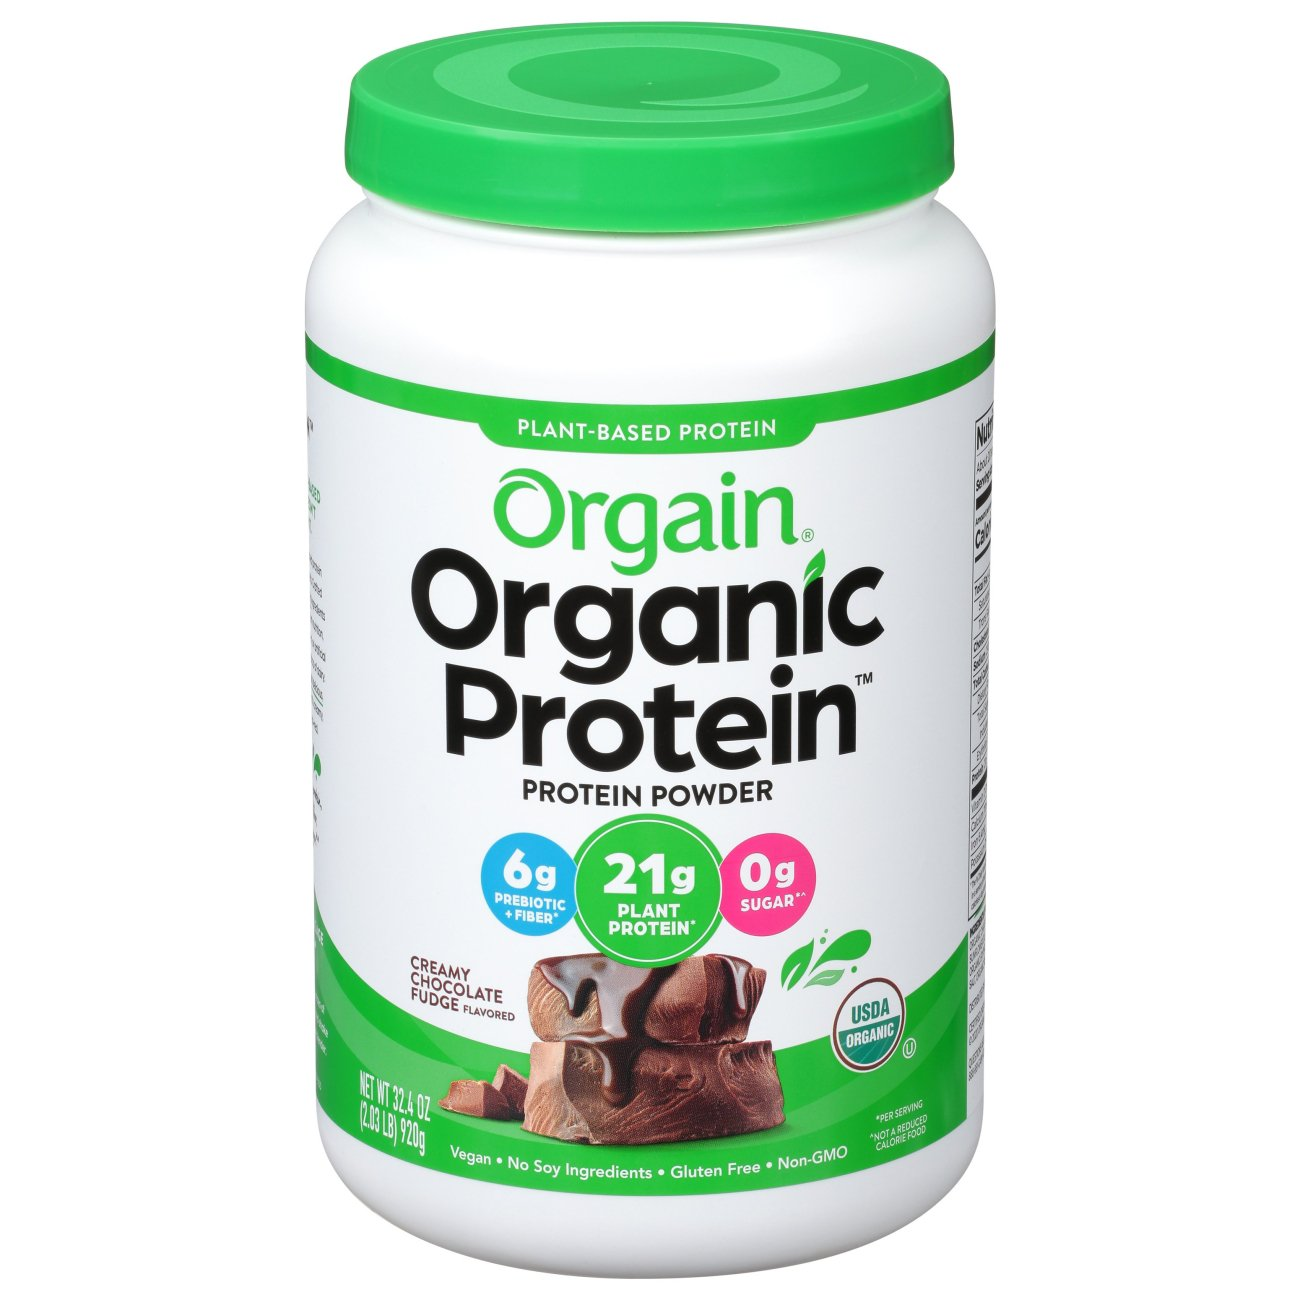 Orgain Organic Protein Plant Based Protein Powder Chocolate - Shop Diet &  Fitness at H-E-B